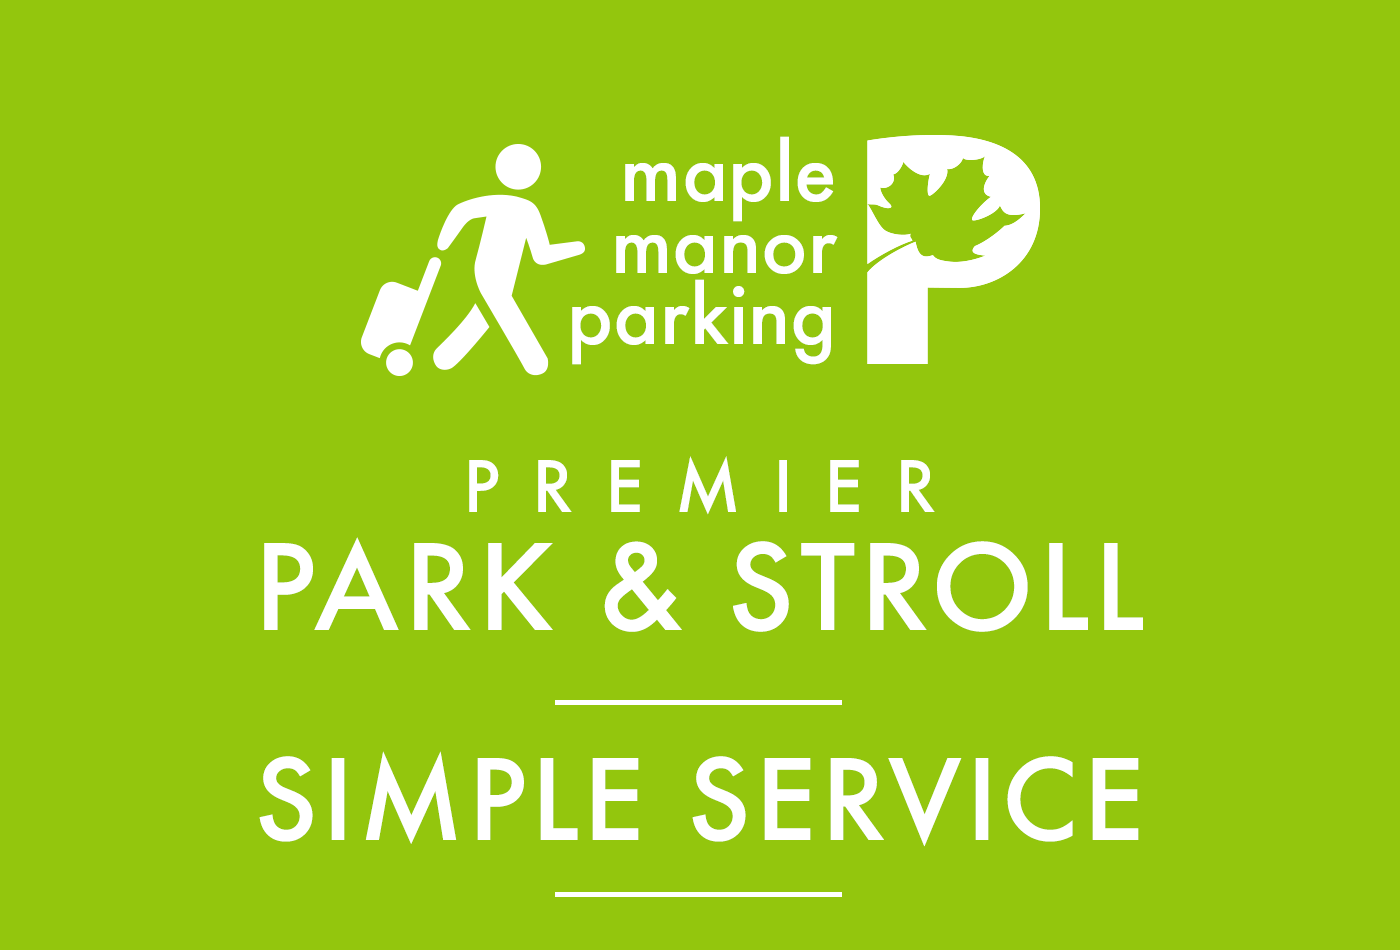 Maple manor premier park and stroll at heathrow ideal for terminal 4 maple manor premier park and stroll at heathrow m4hsunfo